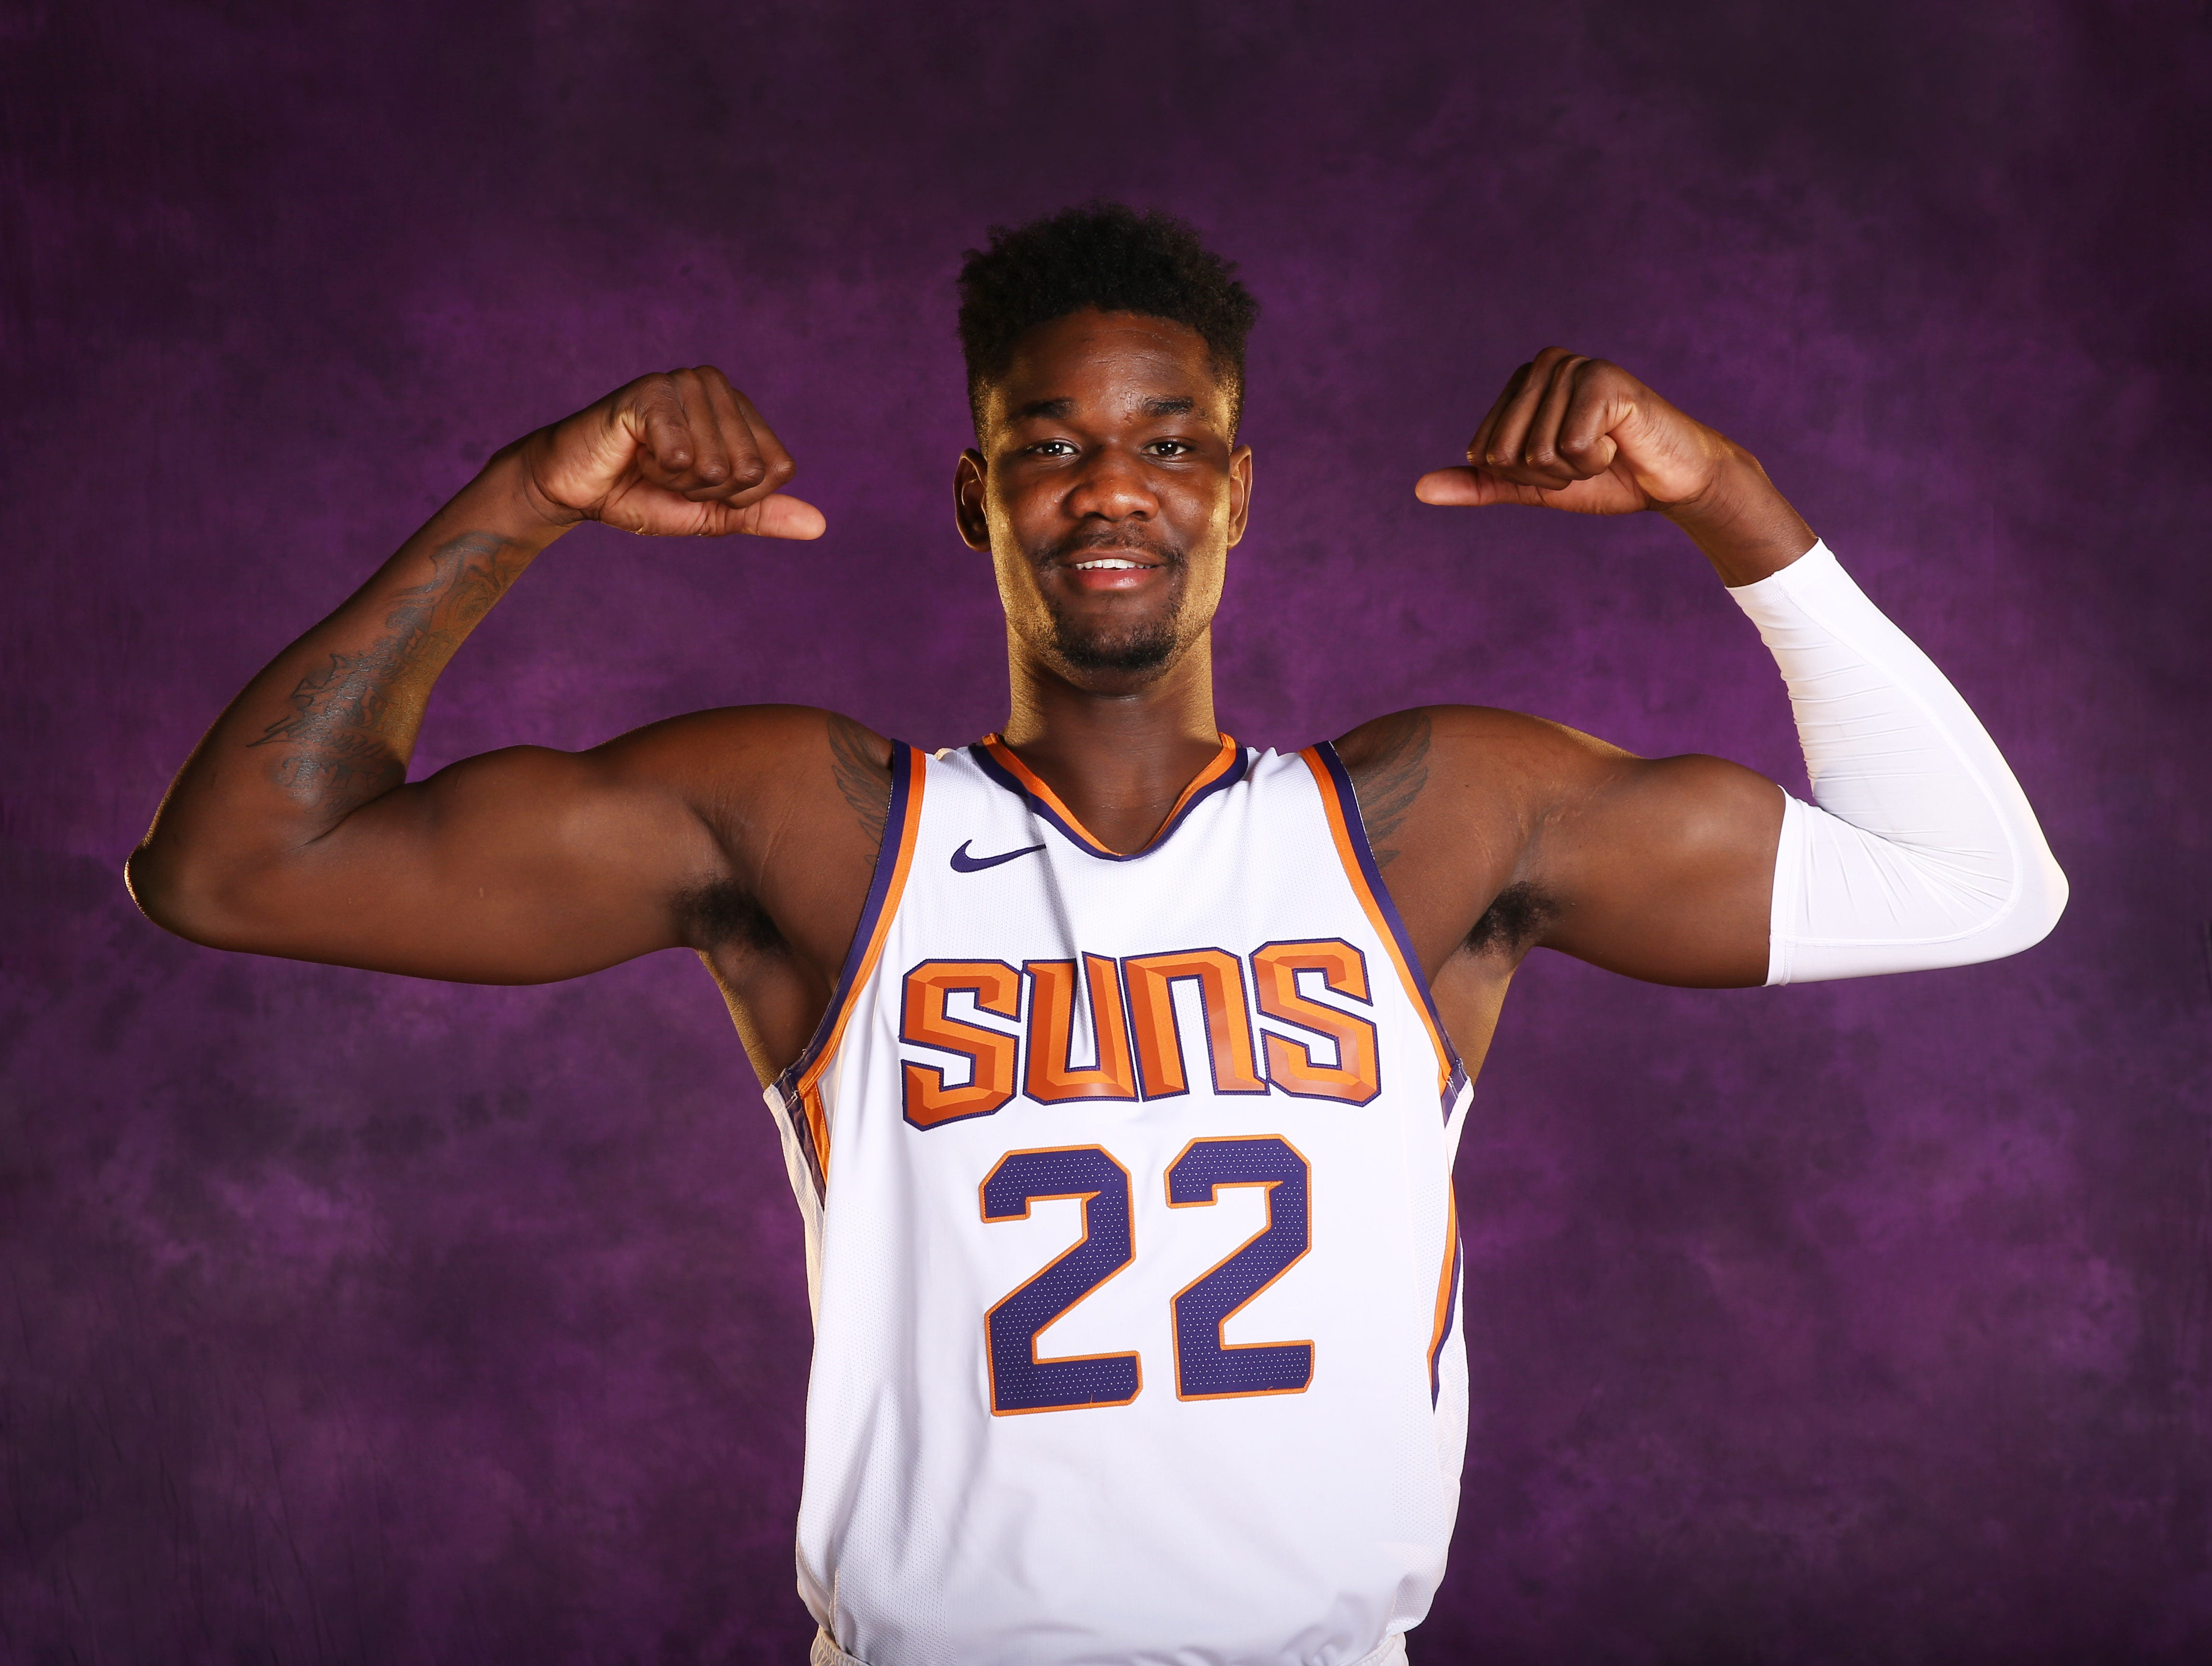 Deandre Ayton || Position: Center || Height/Weight: 7-1, 250